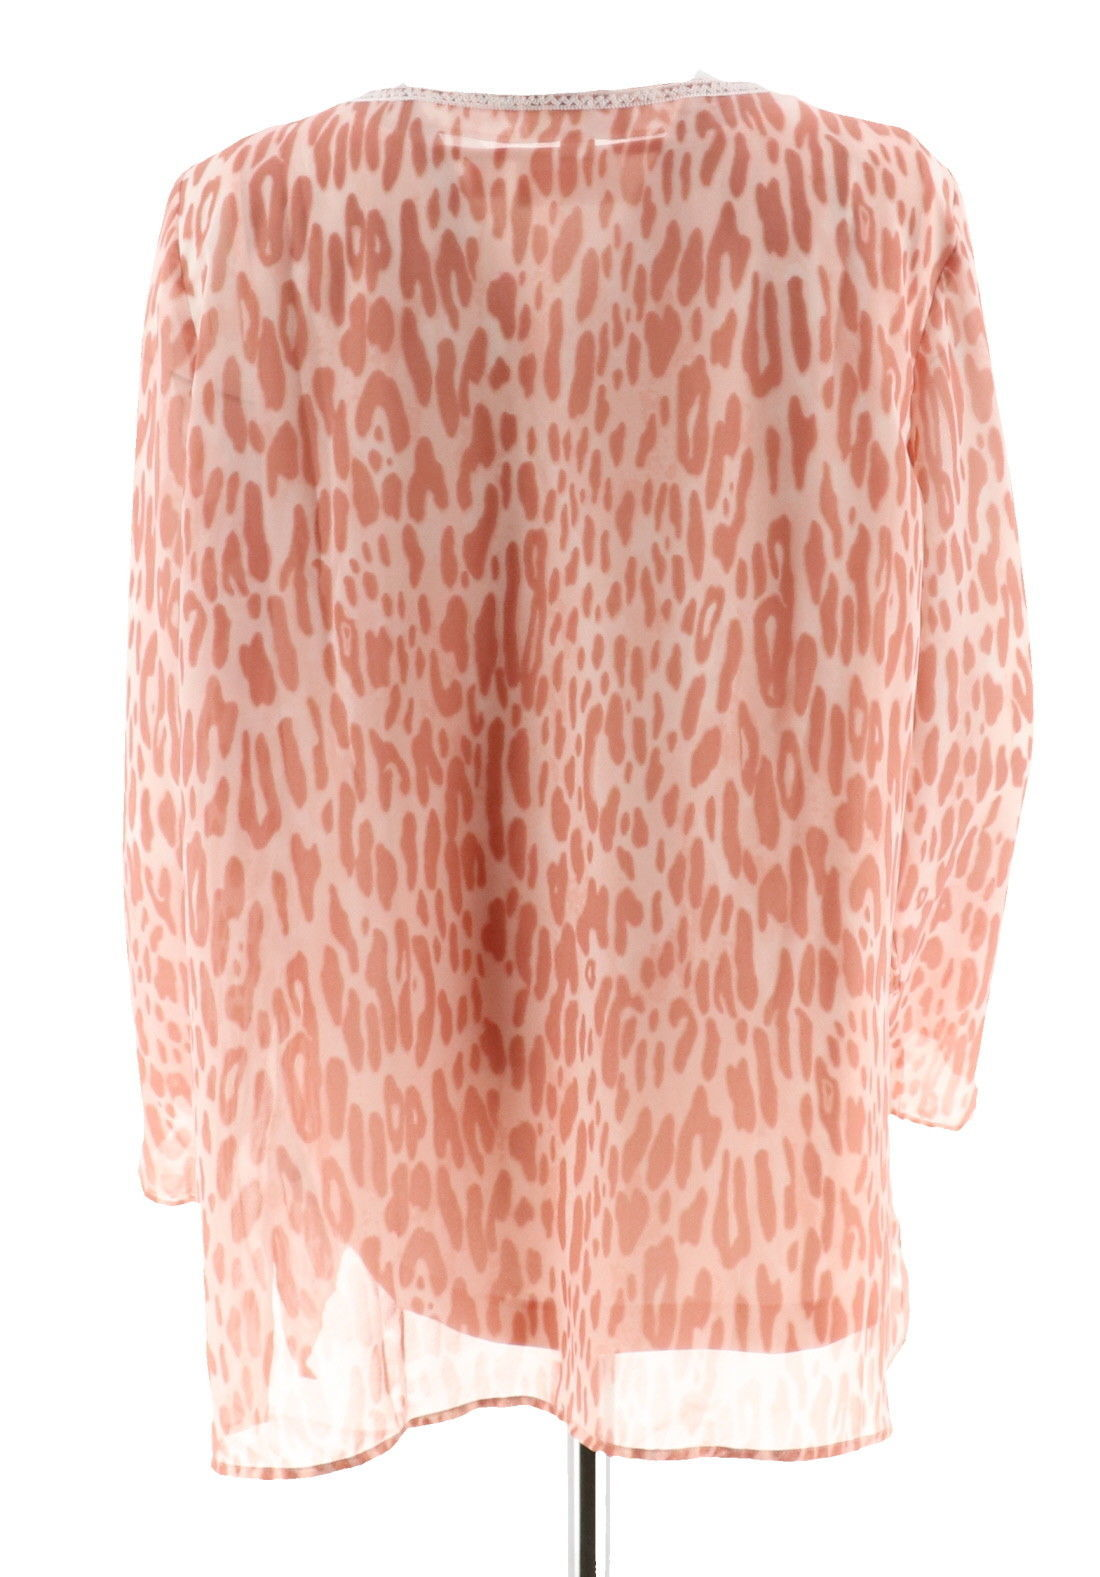 Belle Kim Gravel Embroidered Animal Print Top Tank Shell Pink M NEW A301594